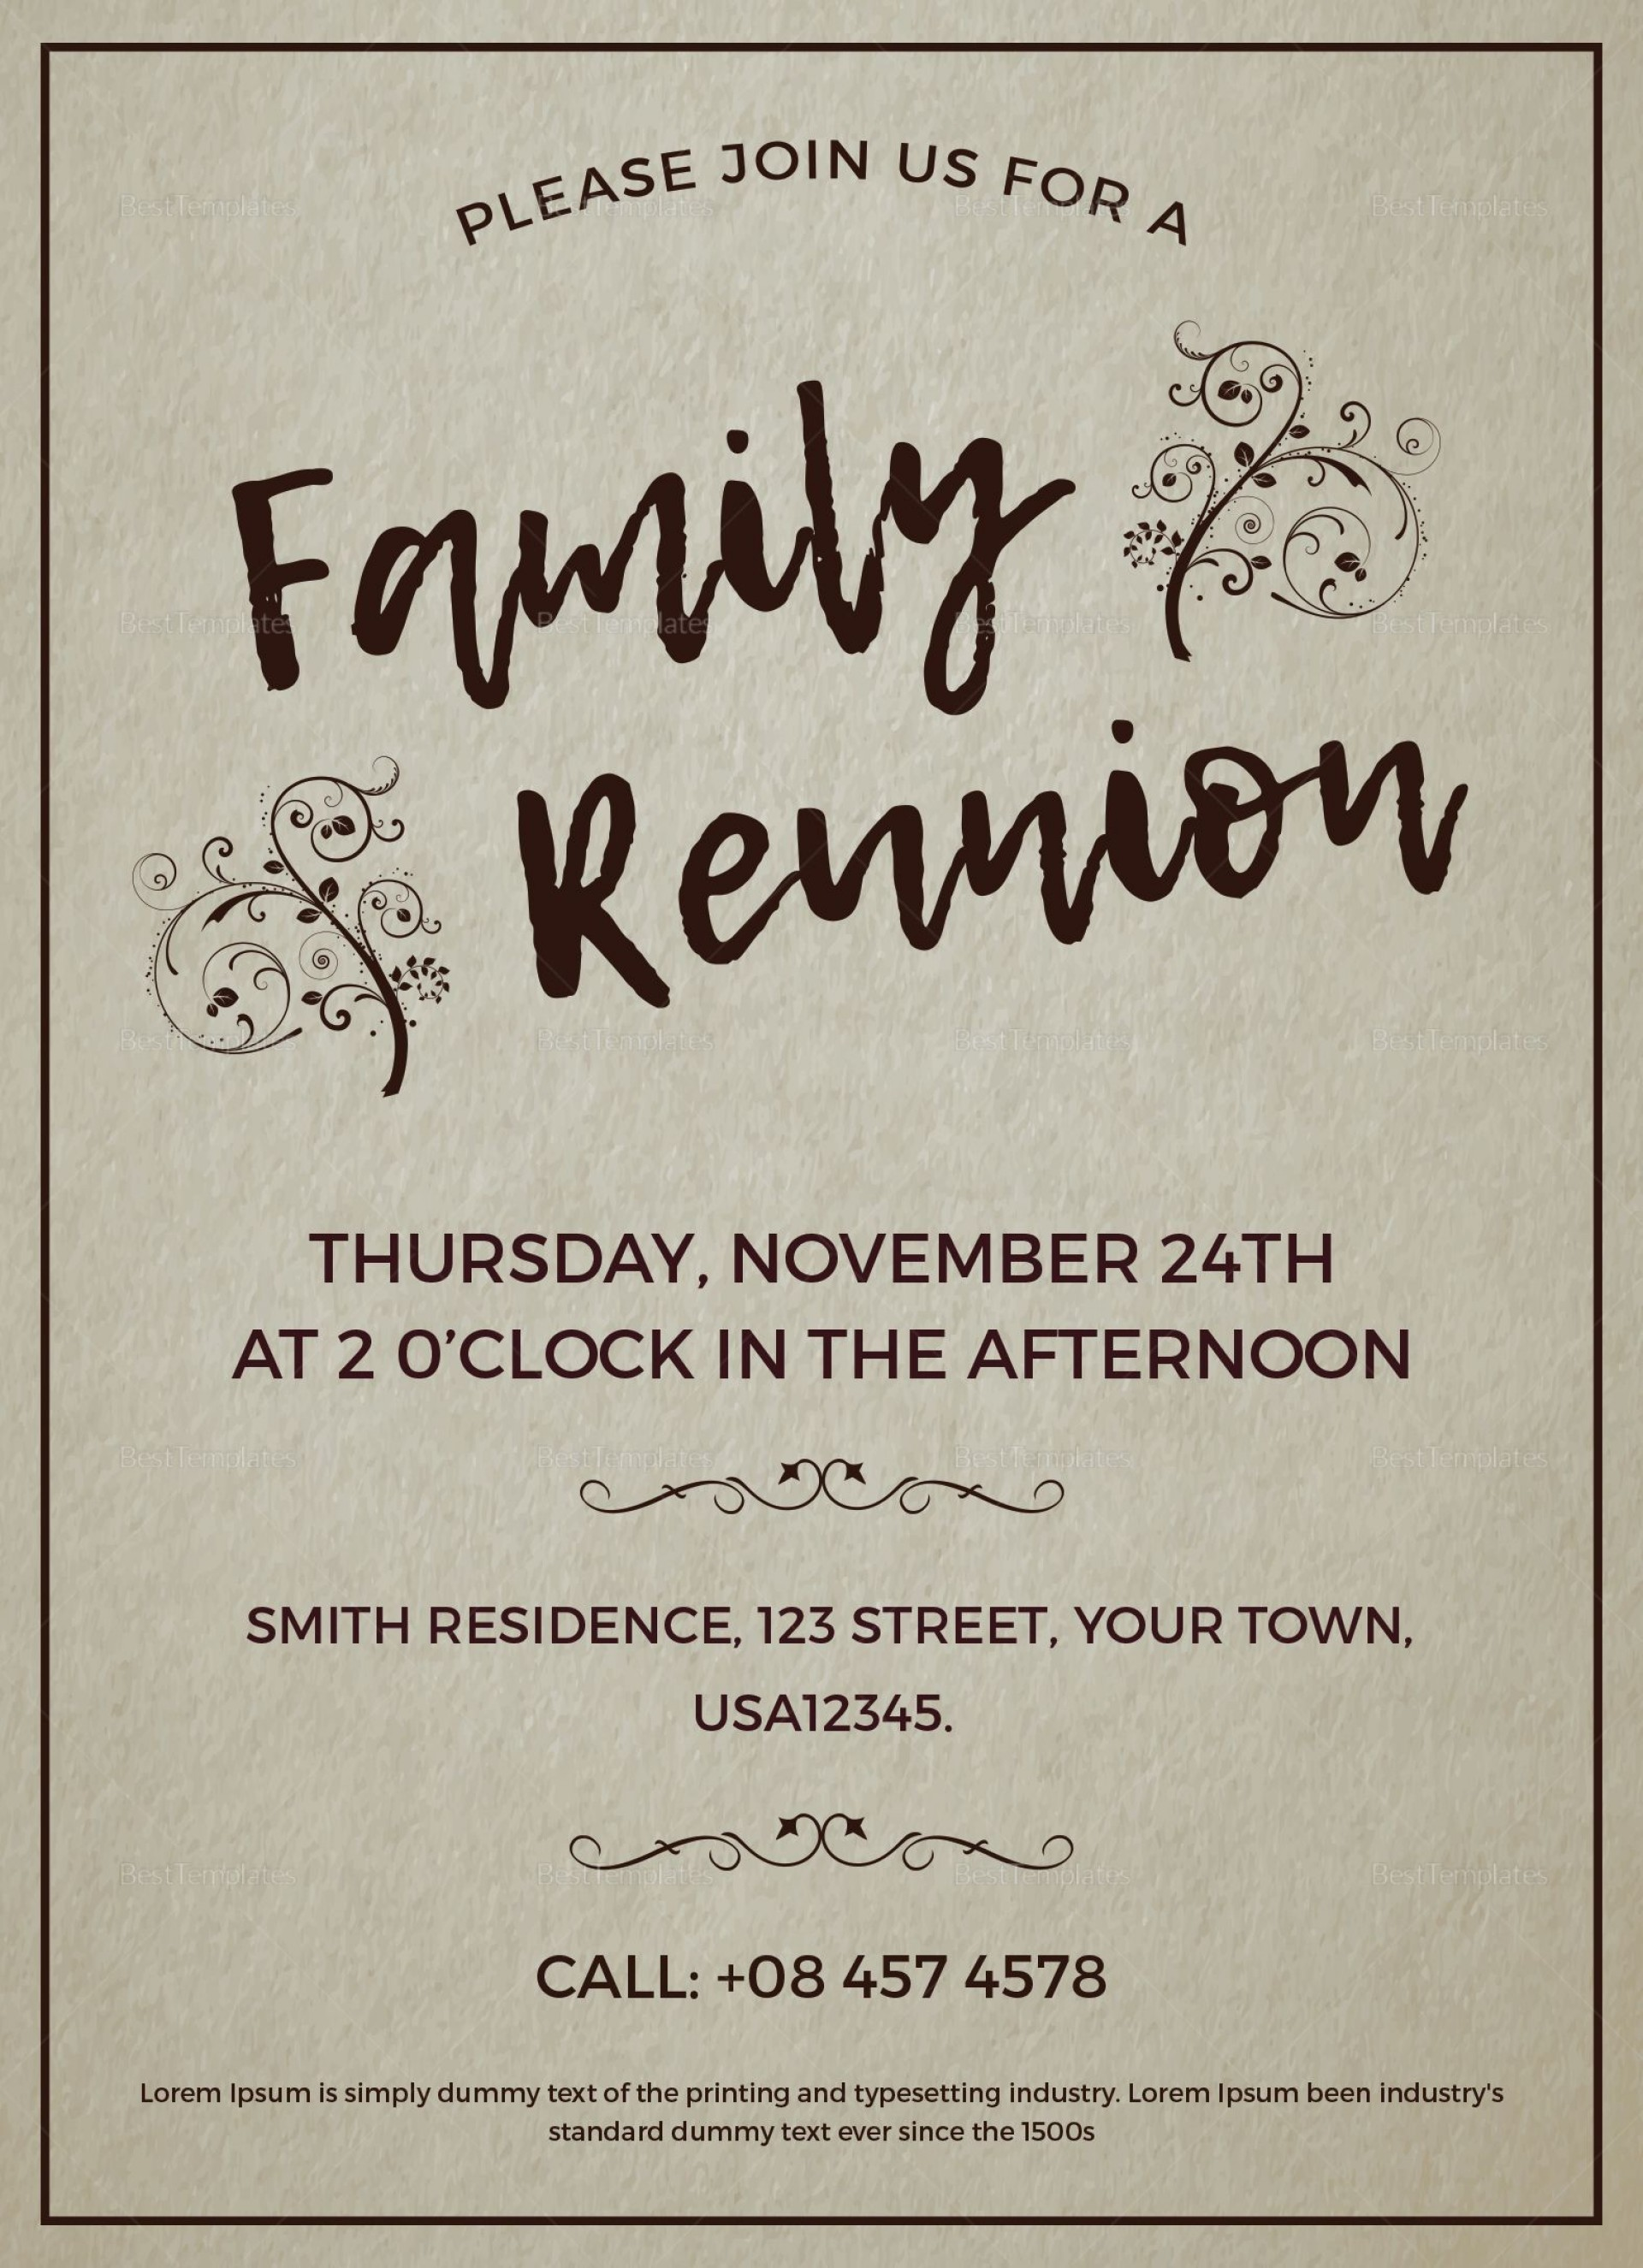 005 Archaicawful Family Reunion Flyer Template High Resolution  Templates Free For1920